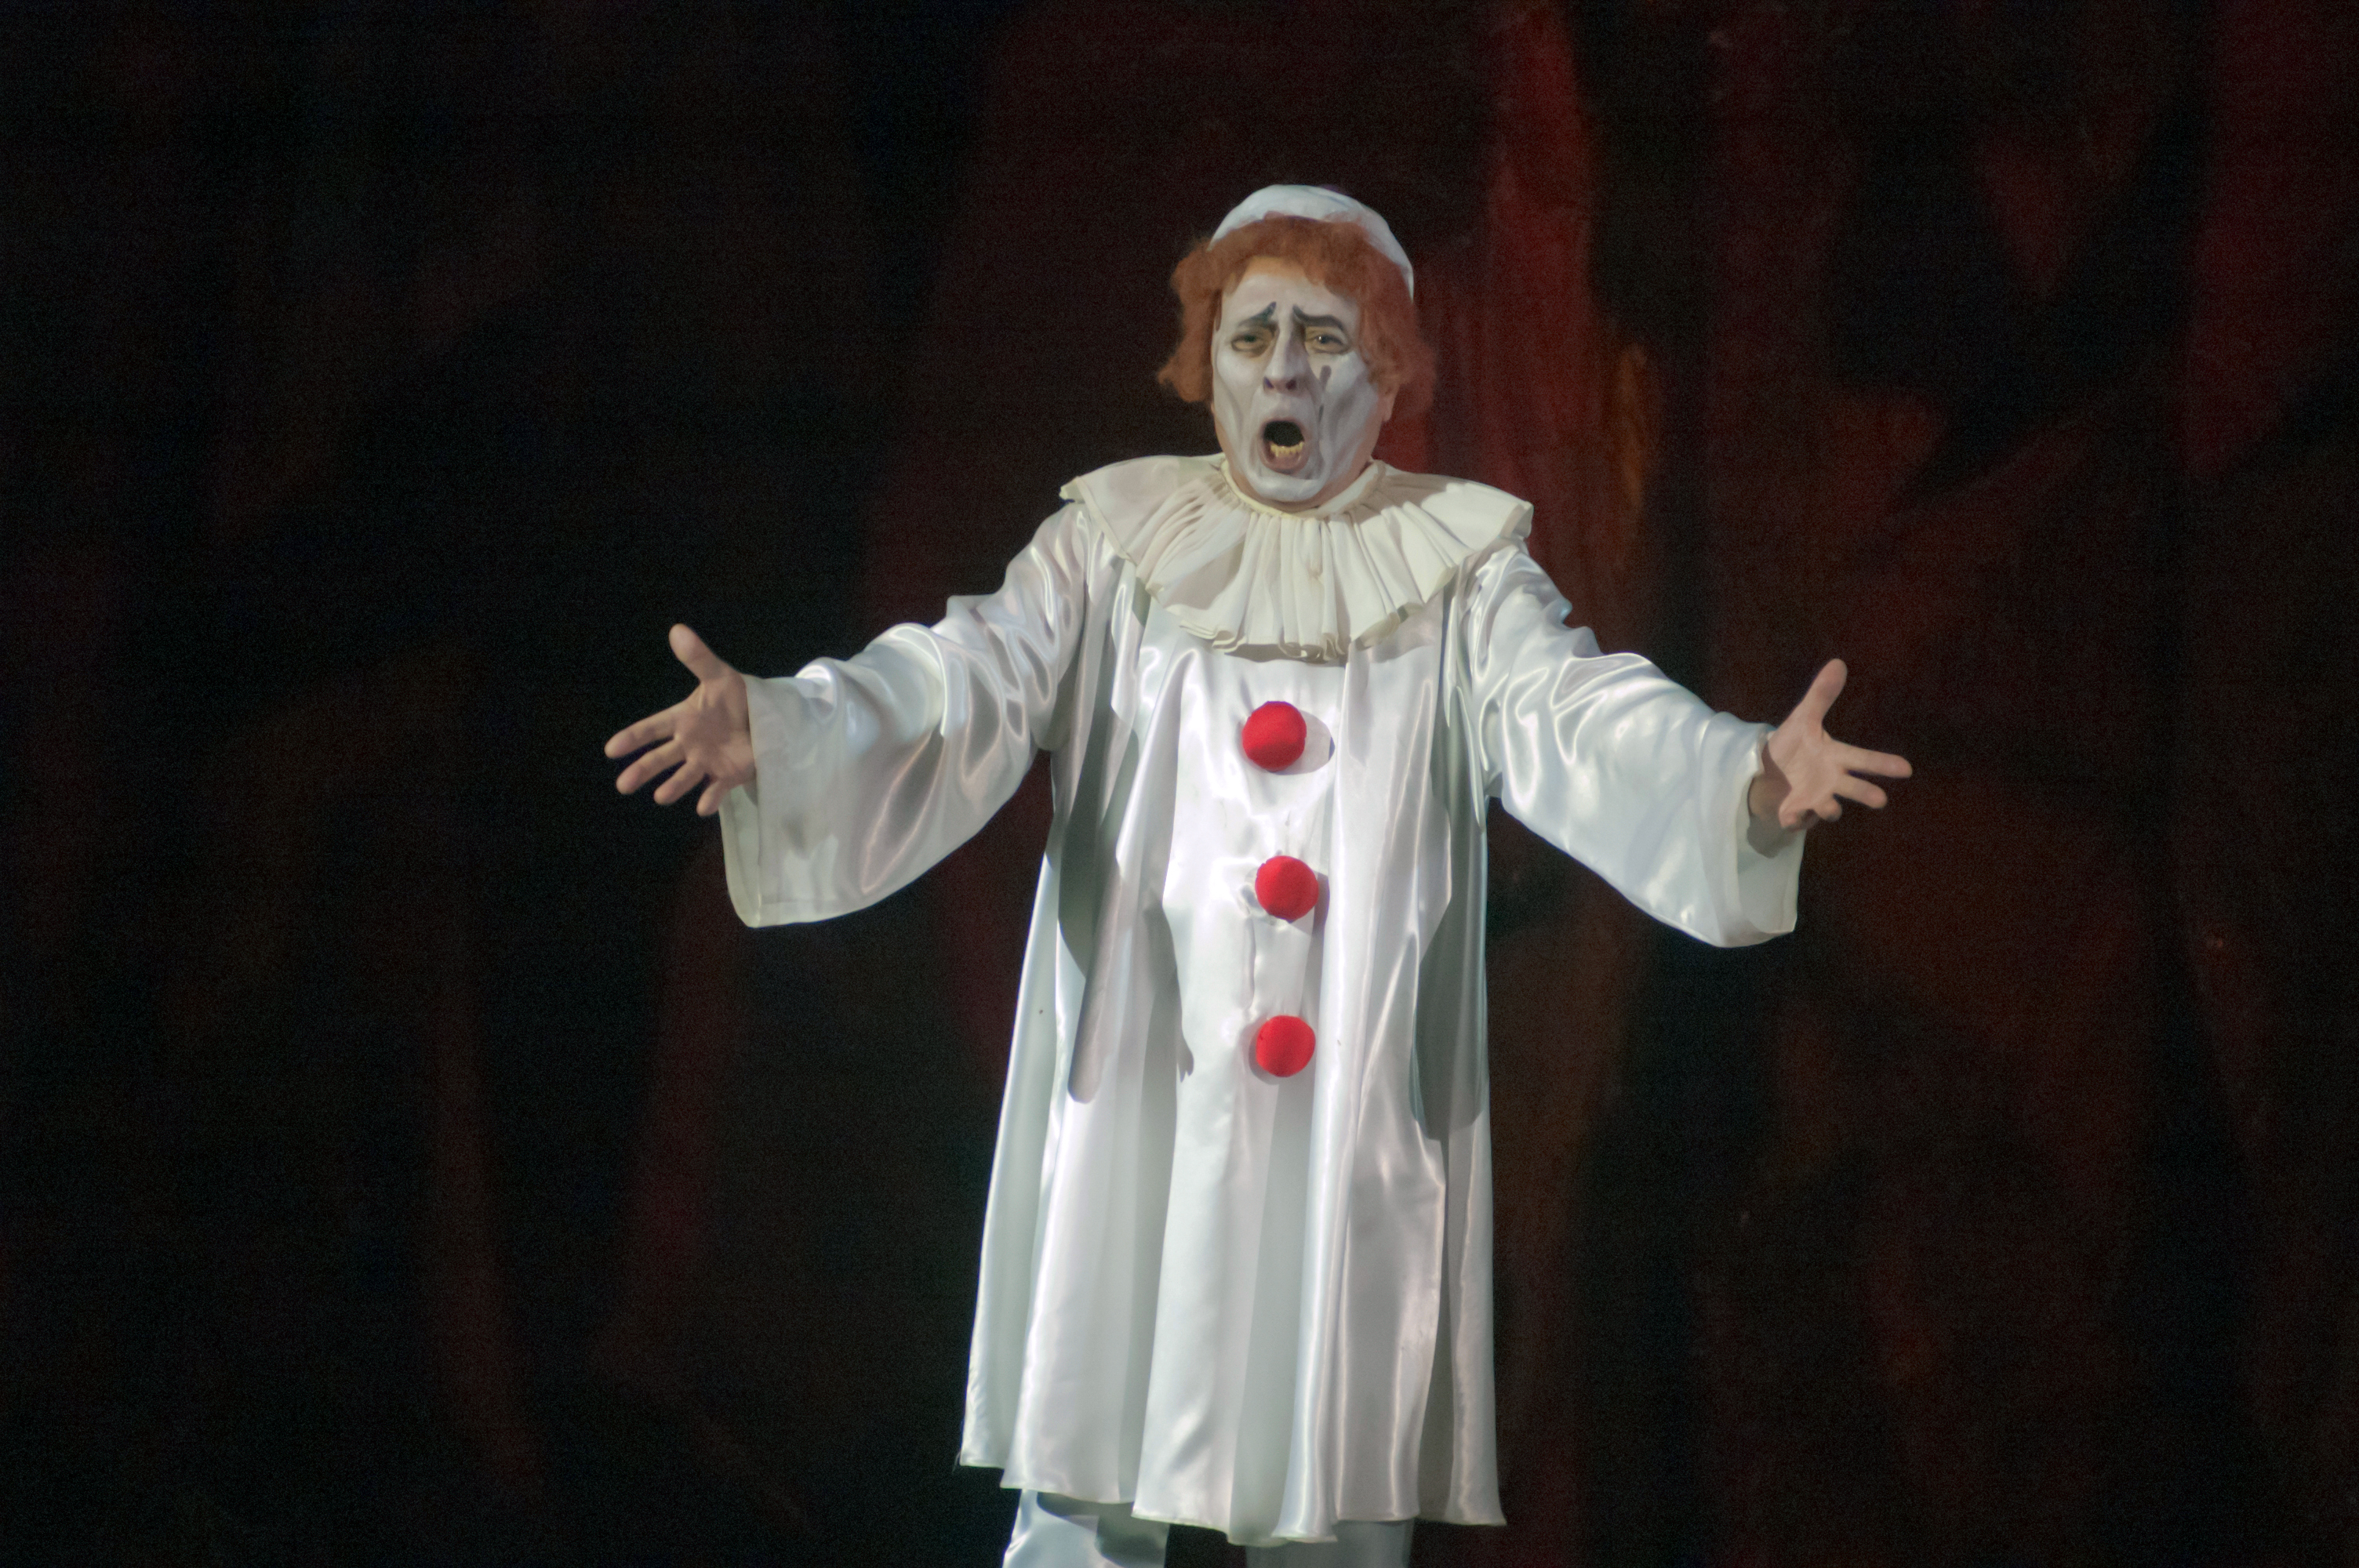 The 1892 opera Pagliacci feature a killer clown named Canjo. [Shutterstock]  sc 1 st  DNAinfo.com & No Ban On Creepy Clown Costumes In Chicago Where Sales Are Up This ...